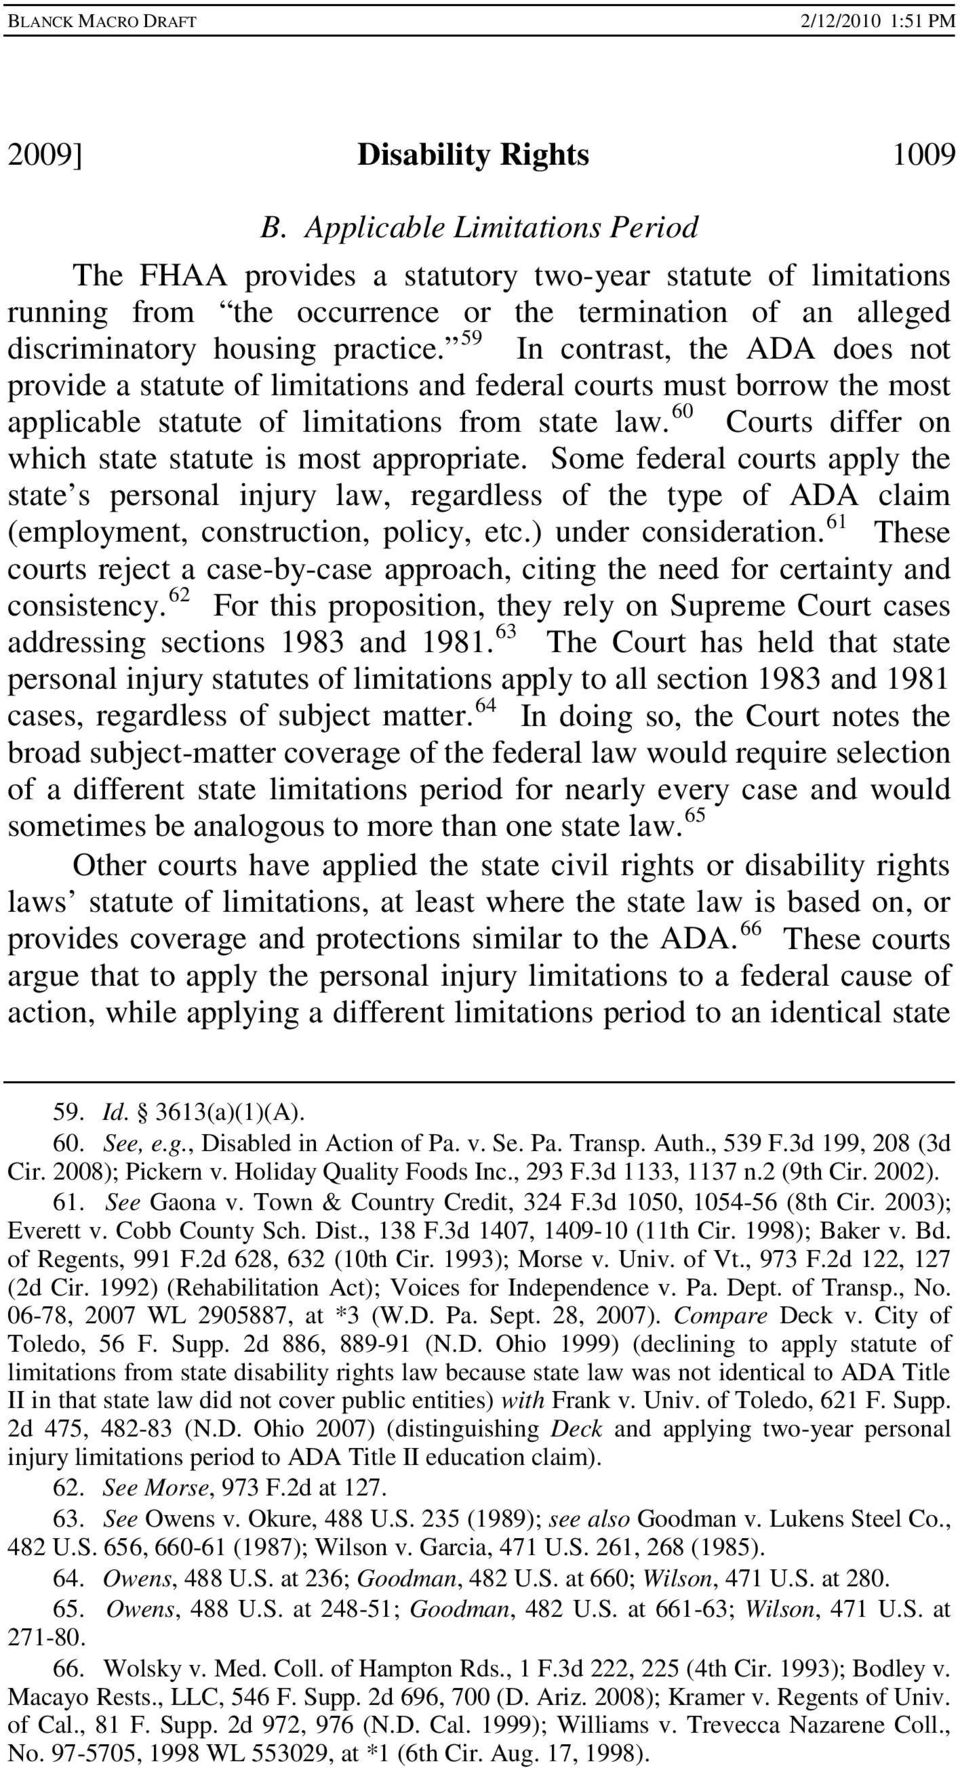 59 In contrast, the ADA does not provide a statute of limitations and federal courts must borrow the most applicable statute of limitations from state law.